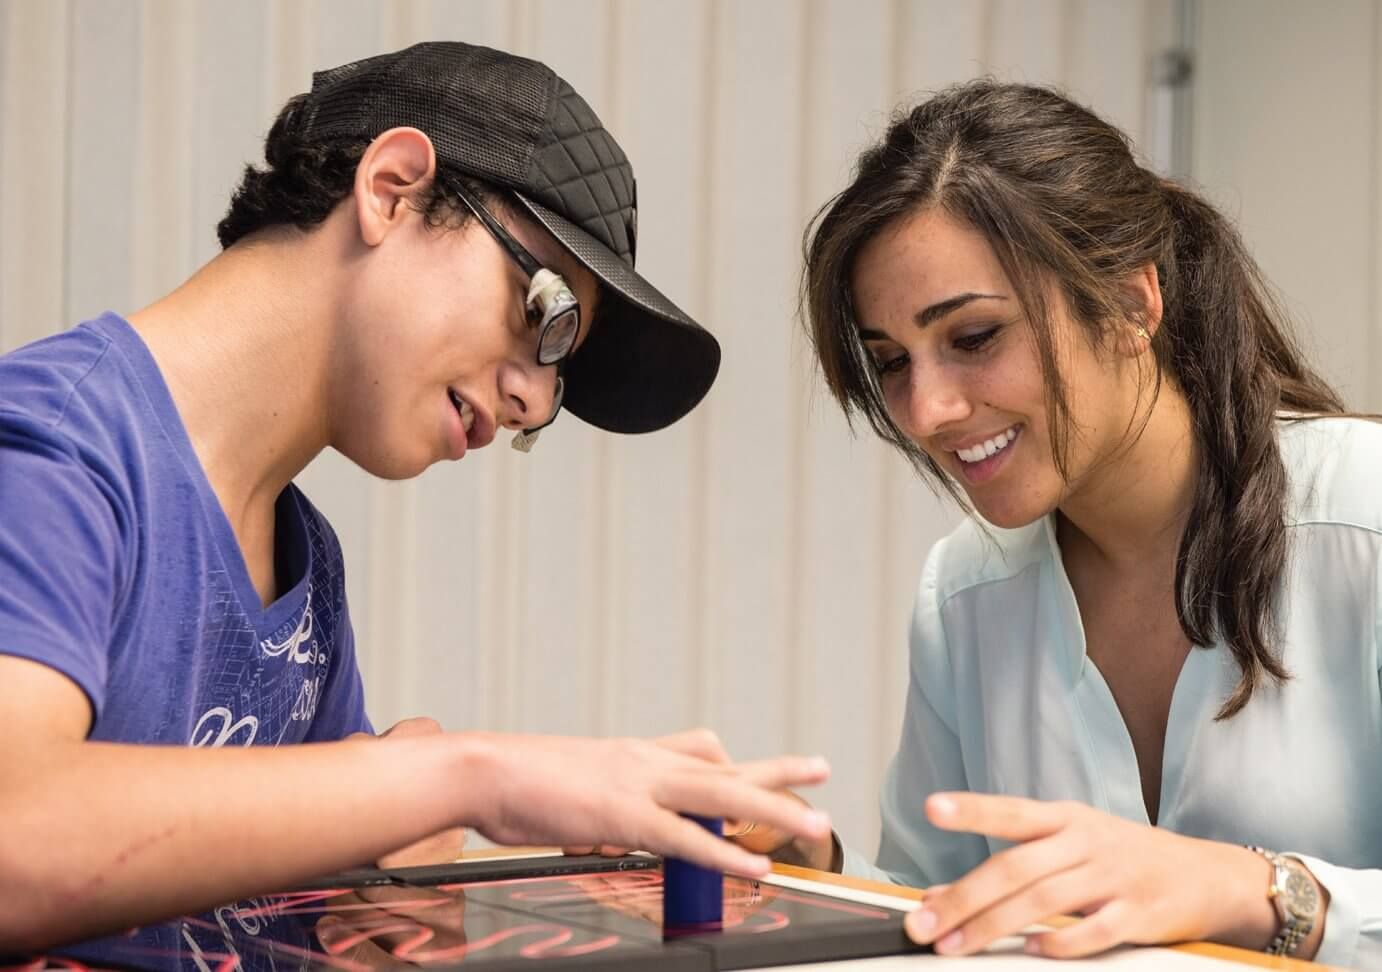 Sonia Garcia, a senior at Rice University, guides Brandon Sierra, a patient at Shriners Hospital for Children, Houston, through tasks intended to measure his dex- terity. (Credit: Jeff Fitlow/Rice University)